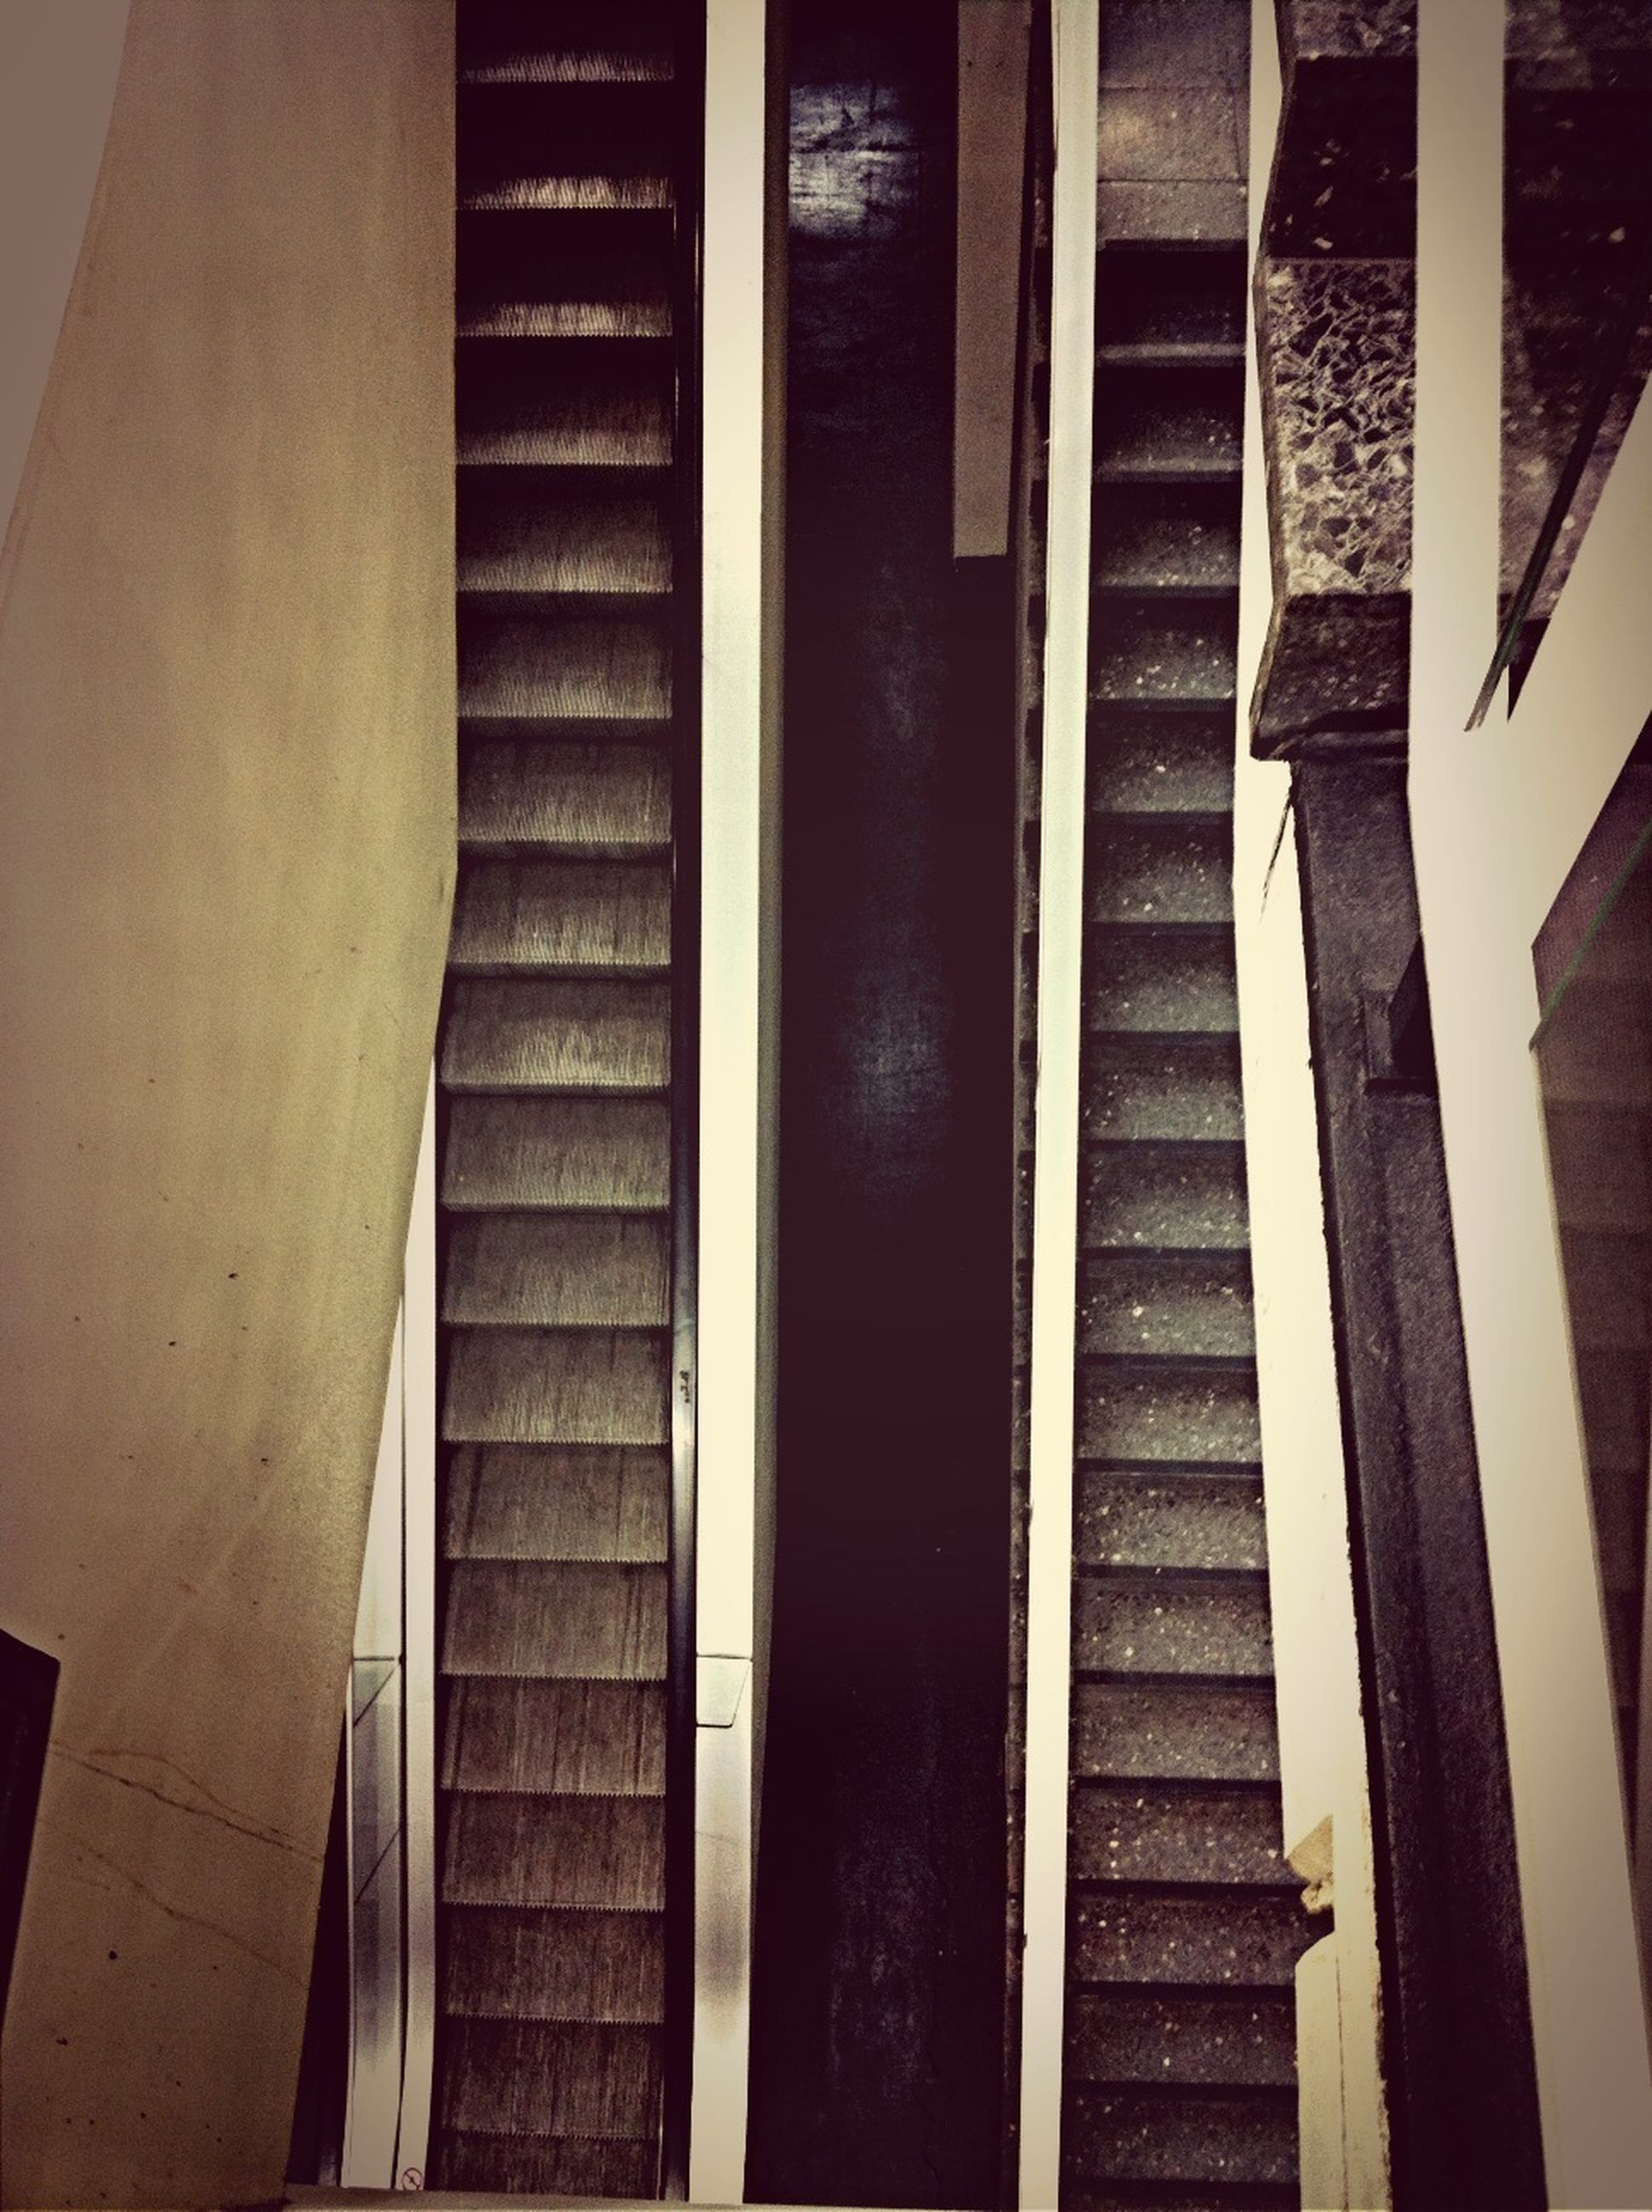 indoors, steps, high angle view, steps and staircases, staircase, railing, architecture, built structure, modern, low angle view, escalator, in a row, no people, illuminated, metal, building, diminishing perspective, reflection, repetition, empty